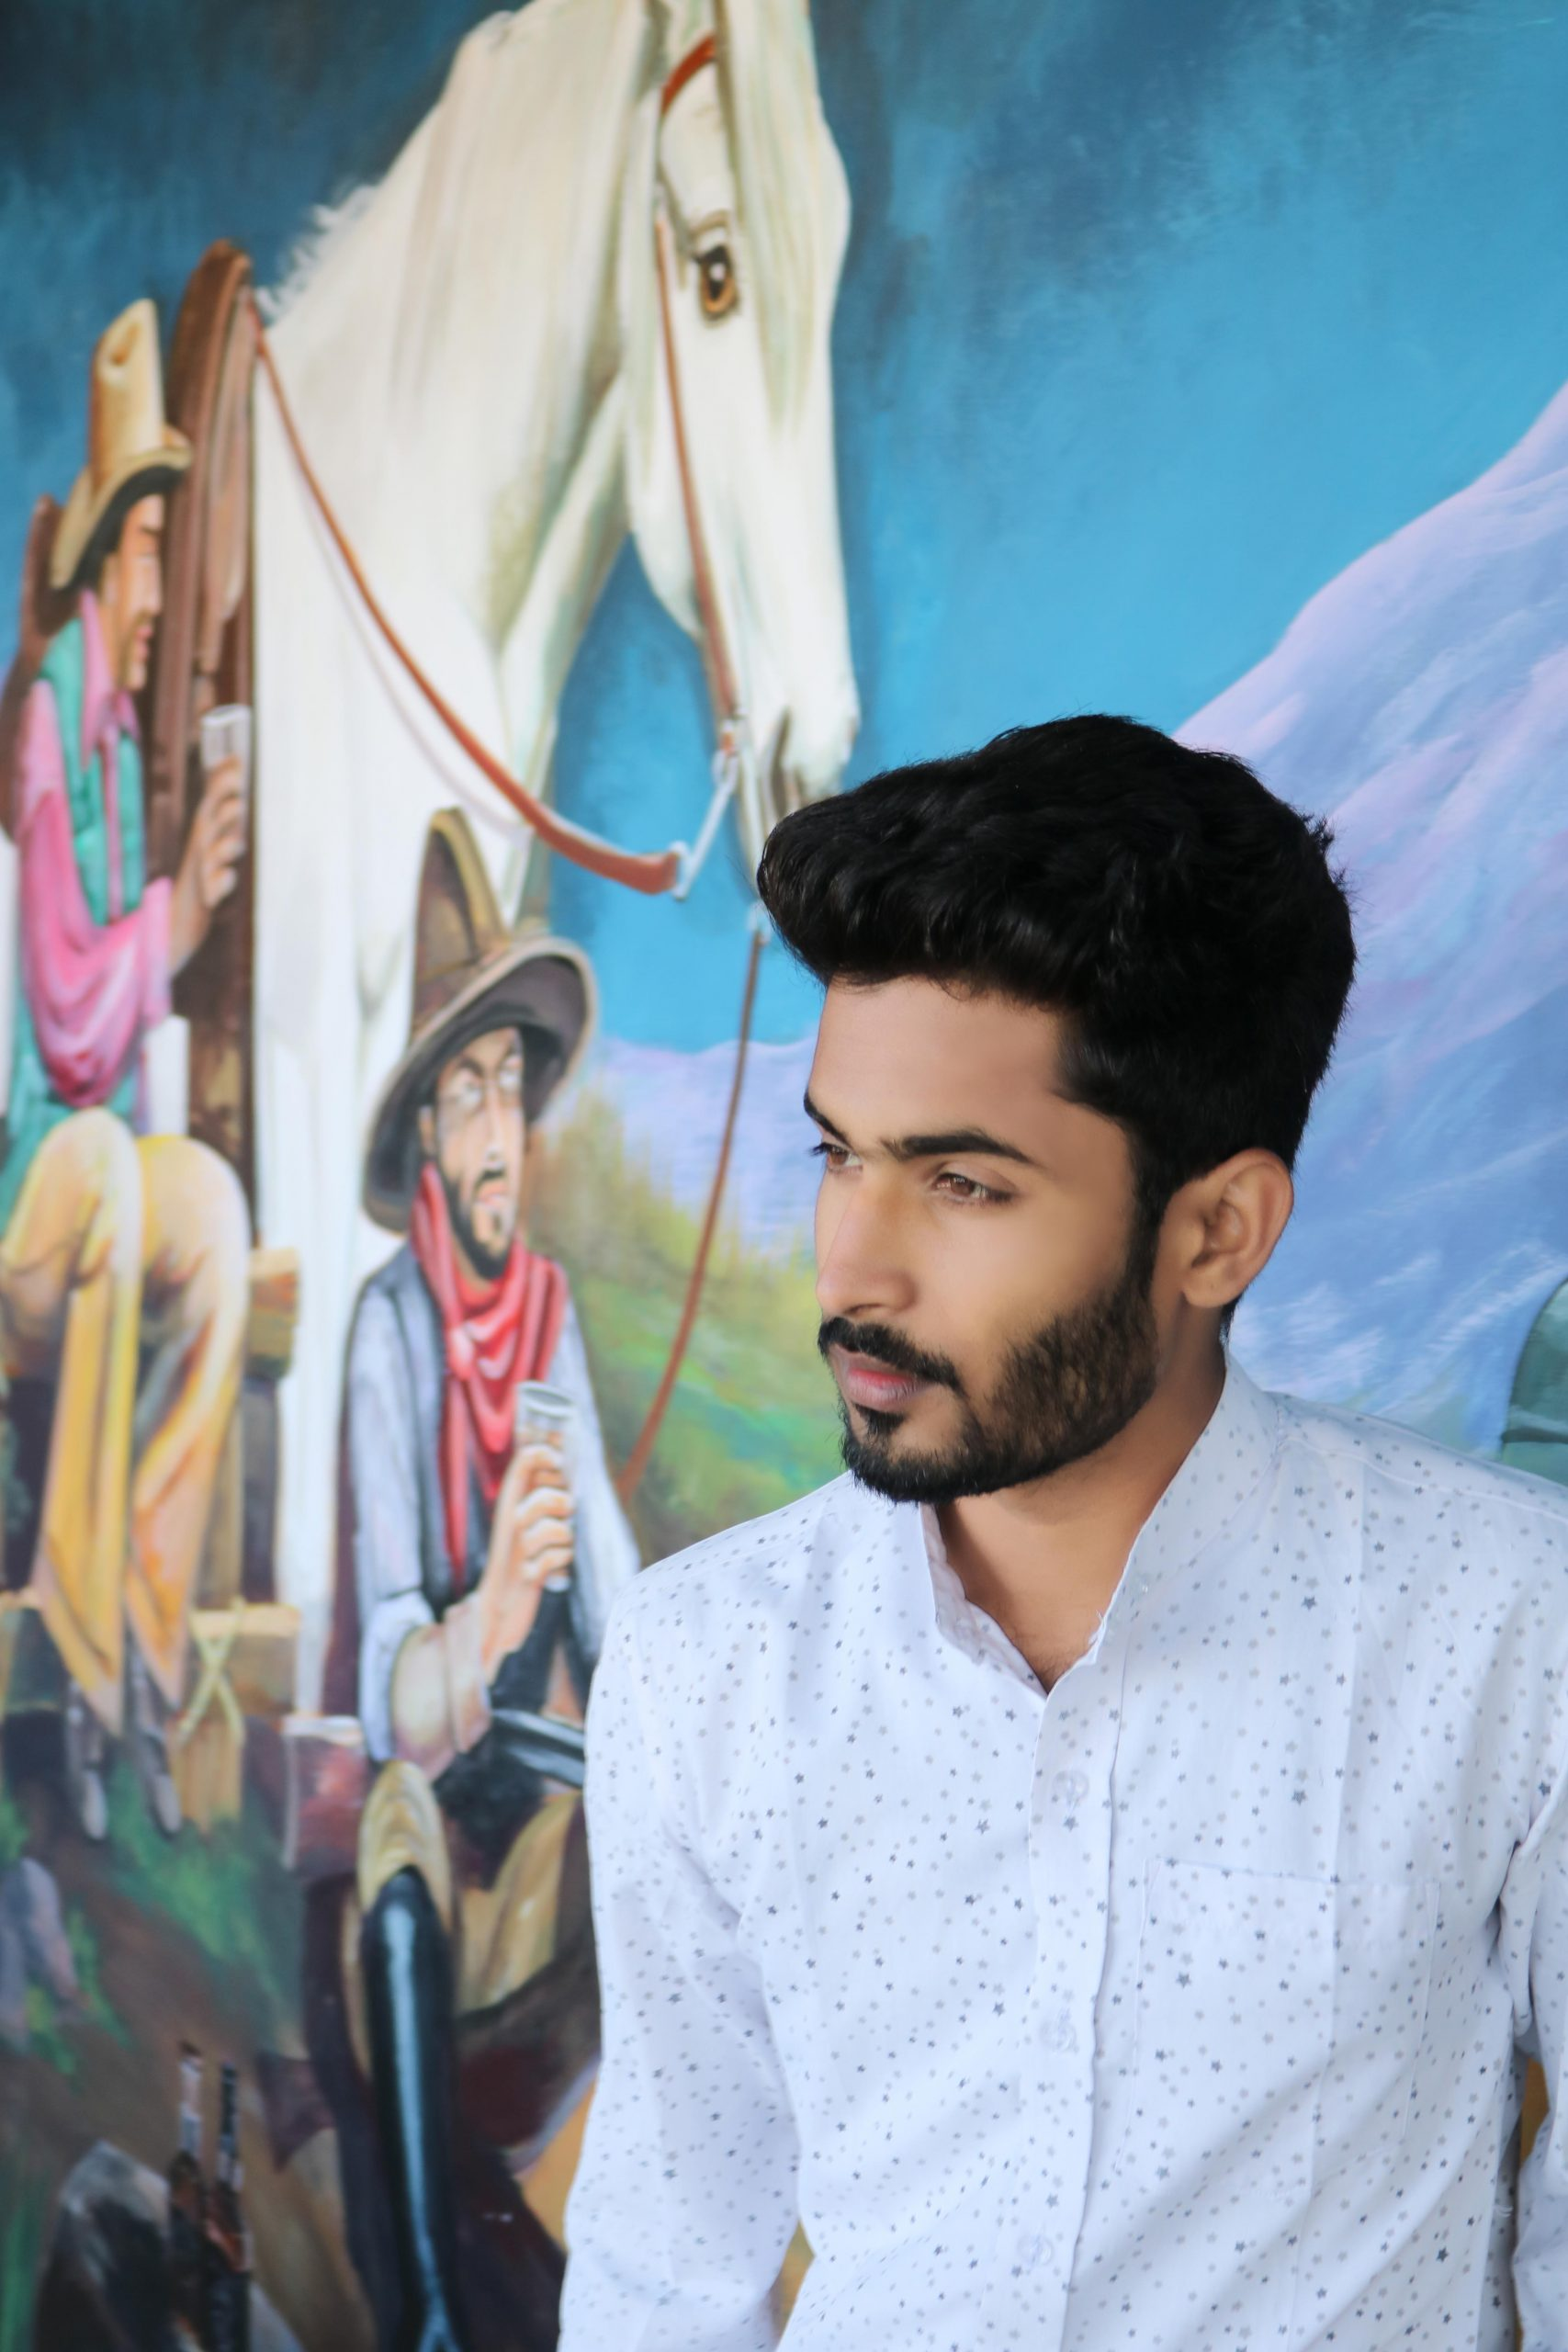 Aryan Rajput is India's youngest influencer marketing entrepreneur